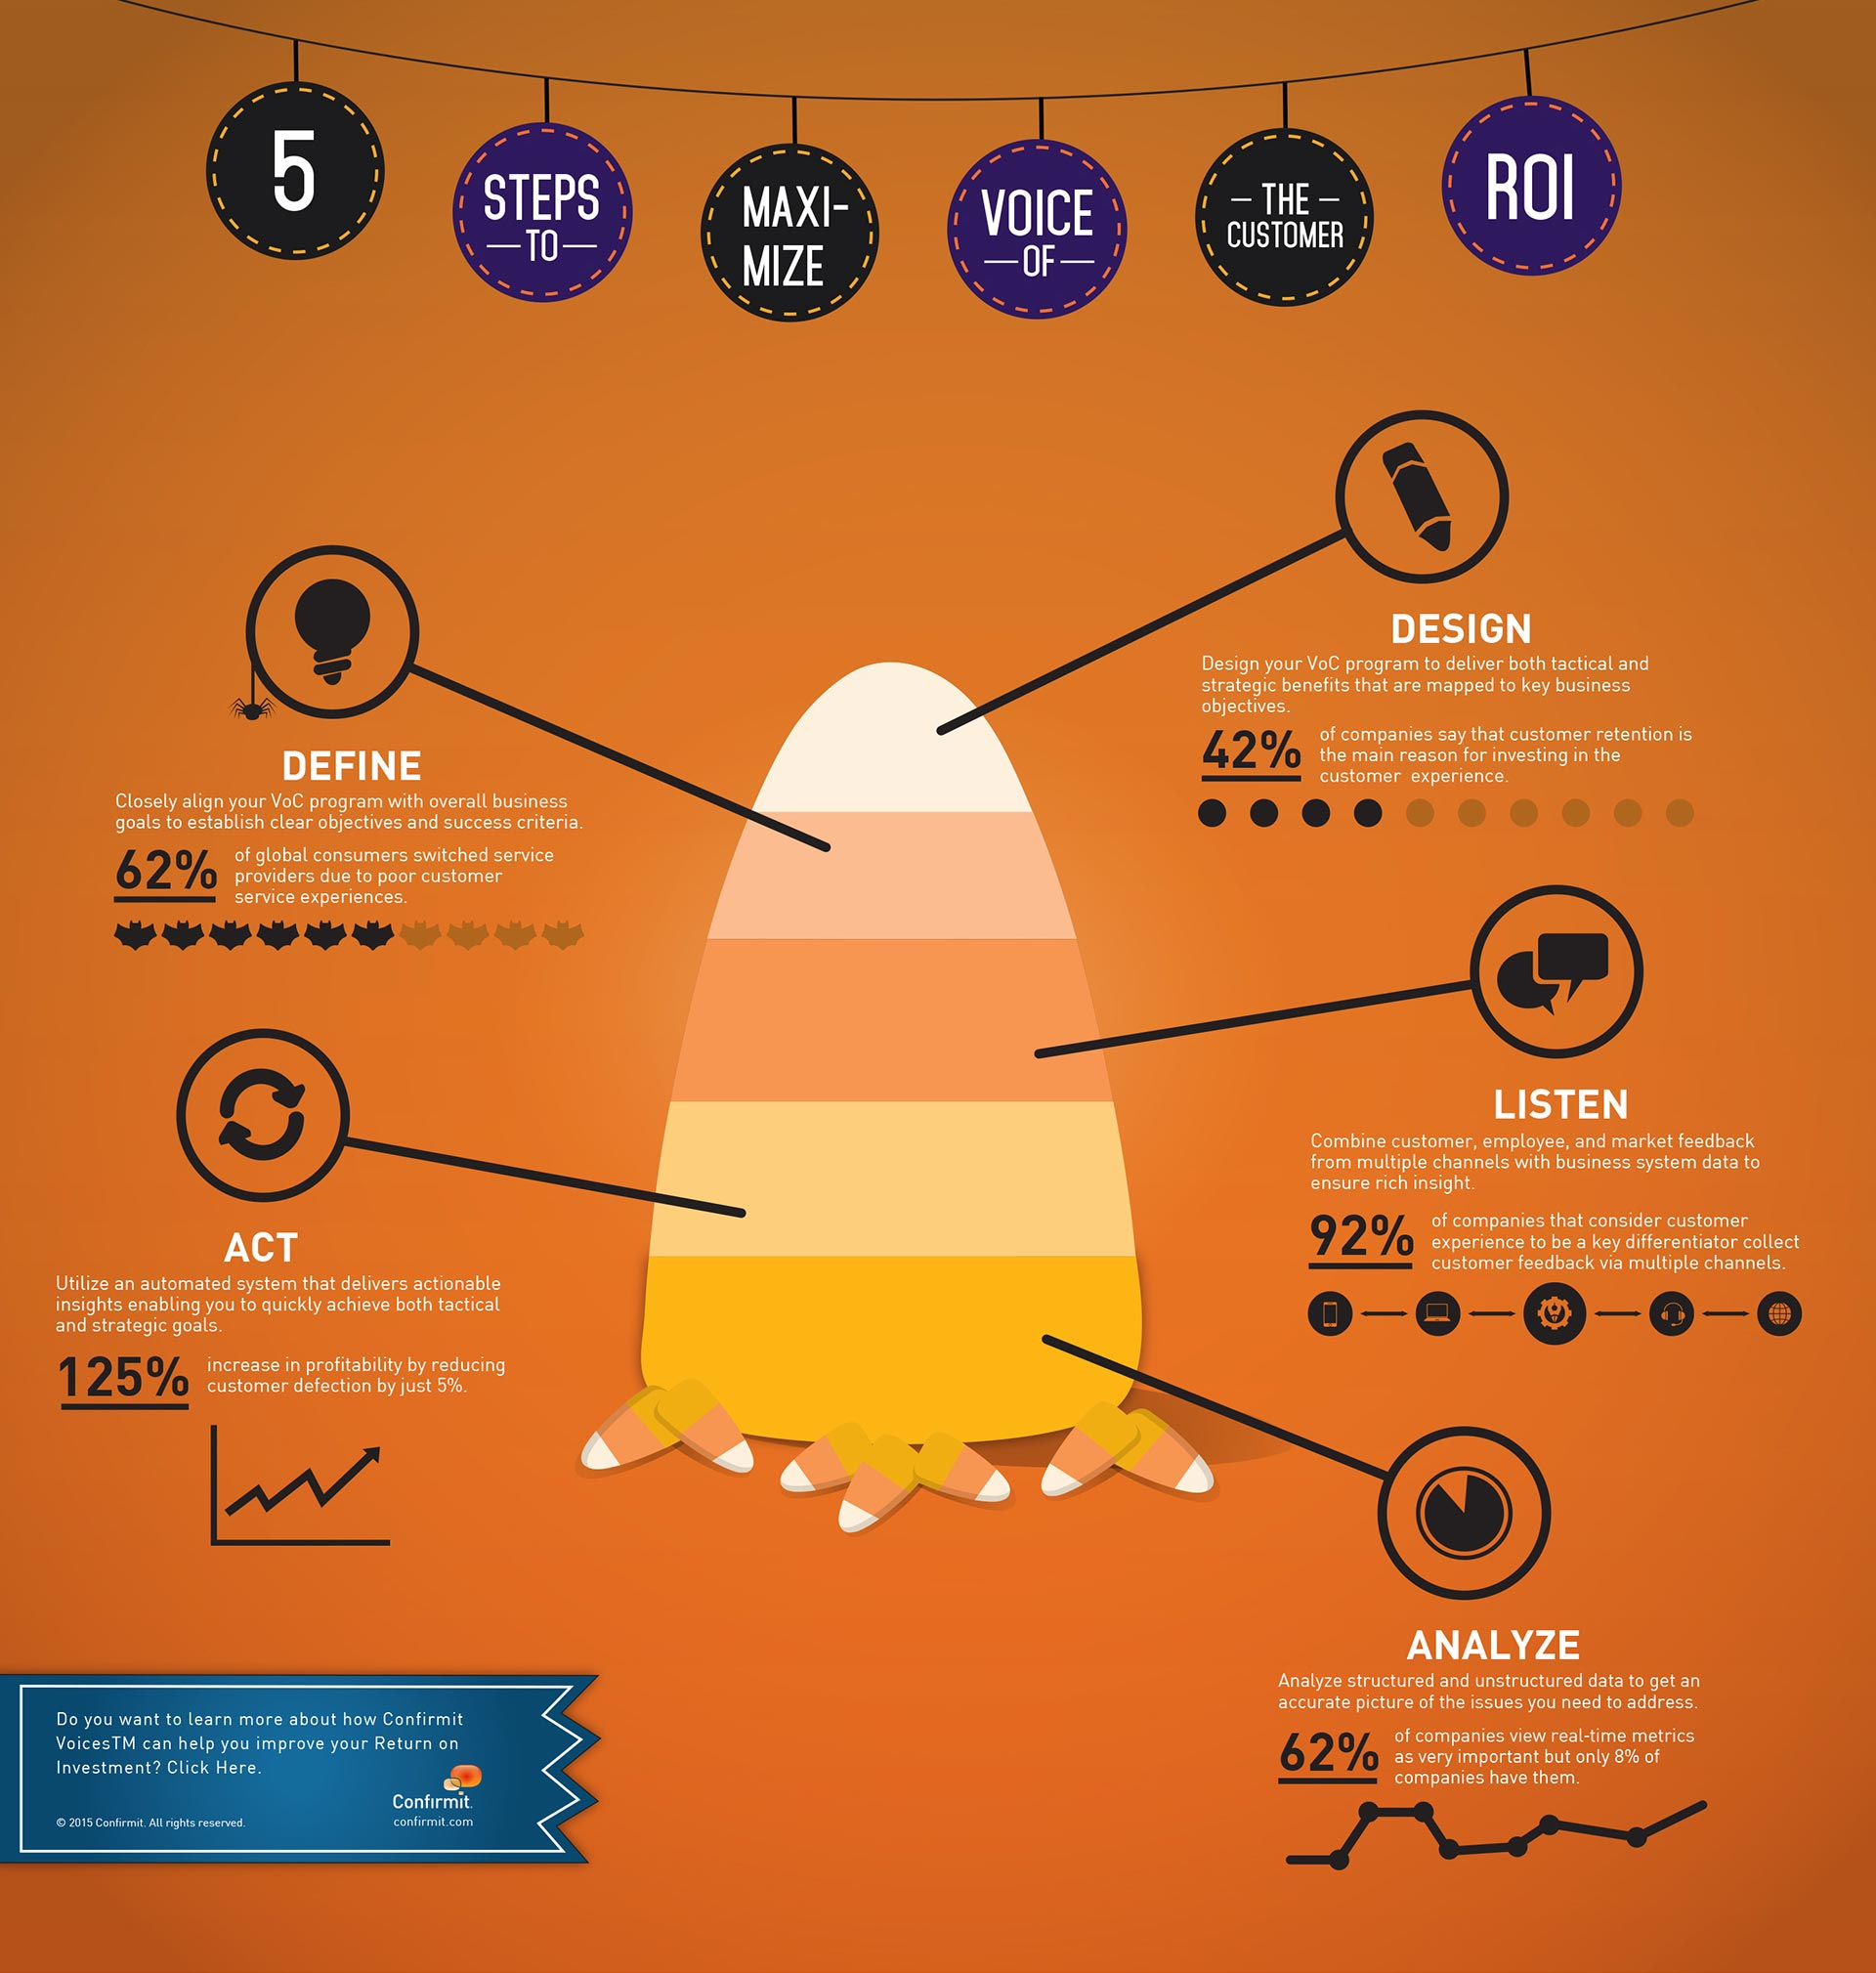 Confirmit infographics is Halloween-themed and features candy corn.